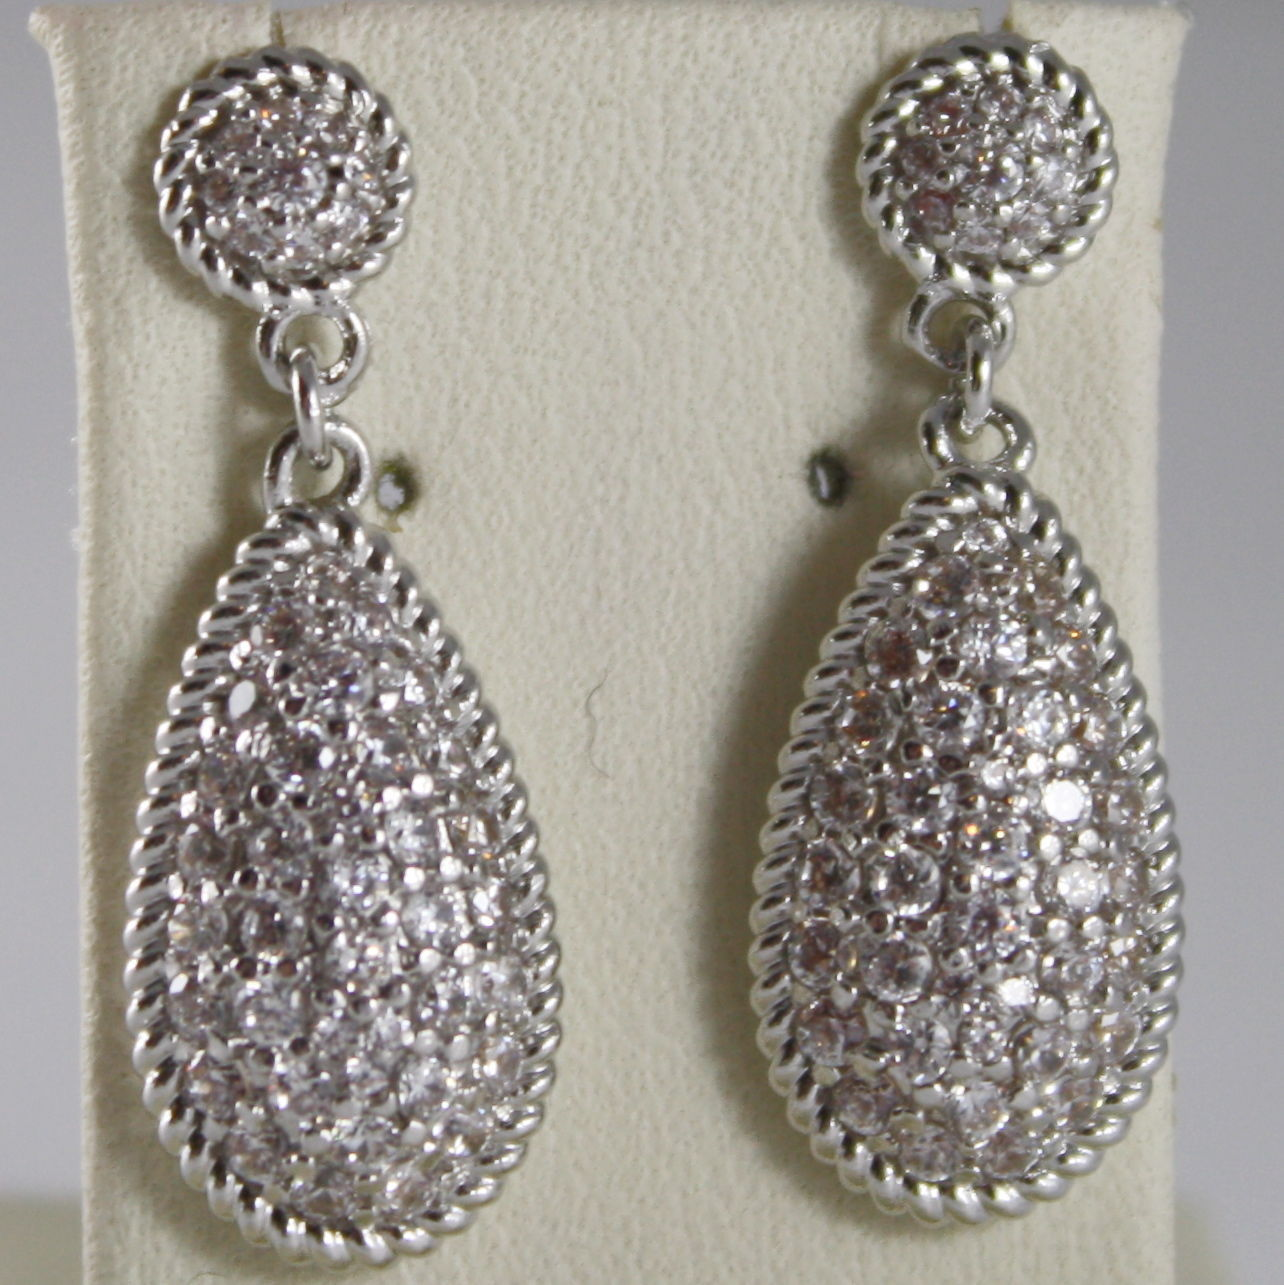 RHODIUM BRONZE EARRINGS, DROP CUBIC ZIRCONIA B14OBB15, BY REBECCA MADE IN ITALY